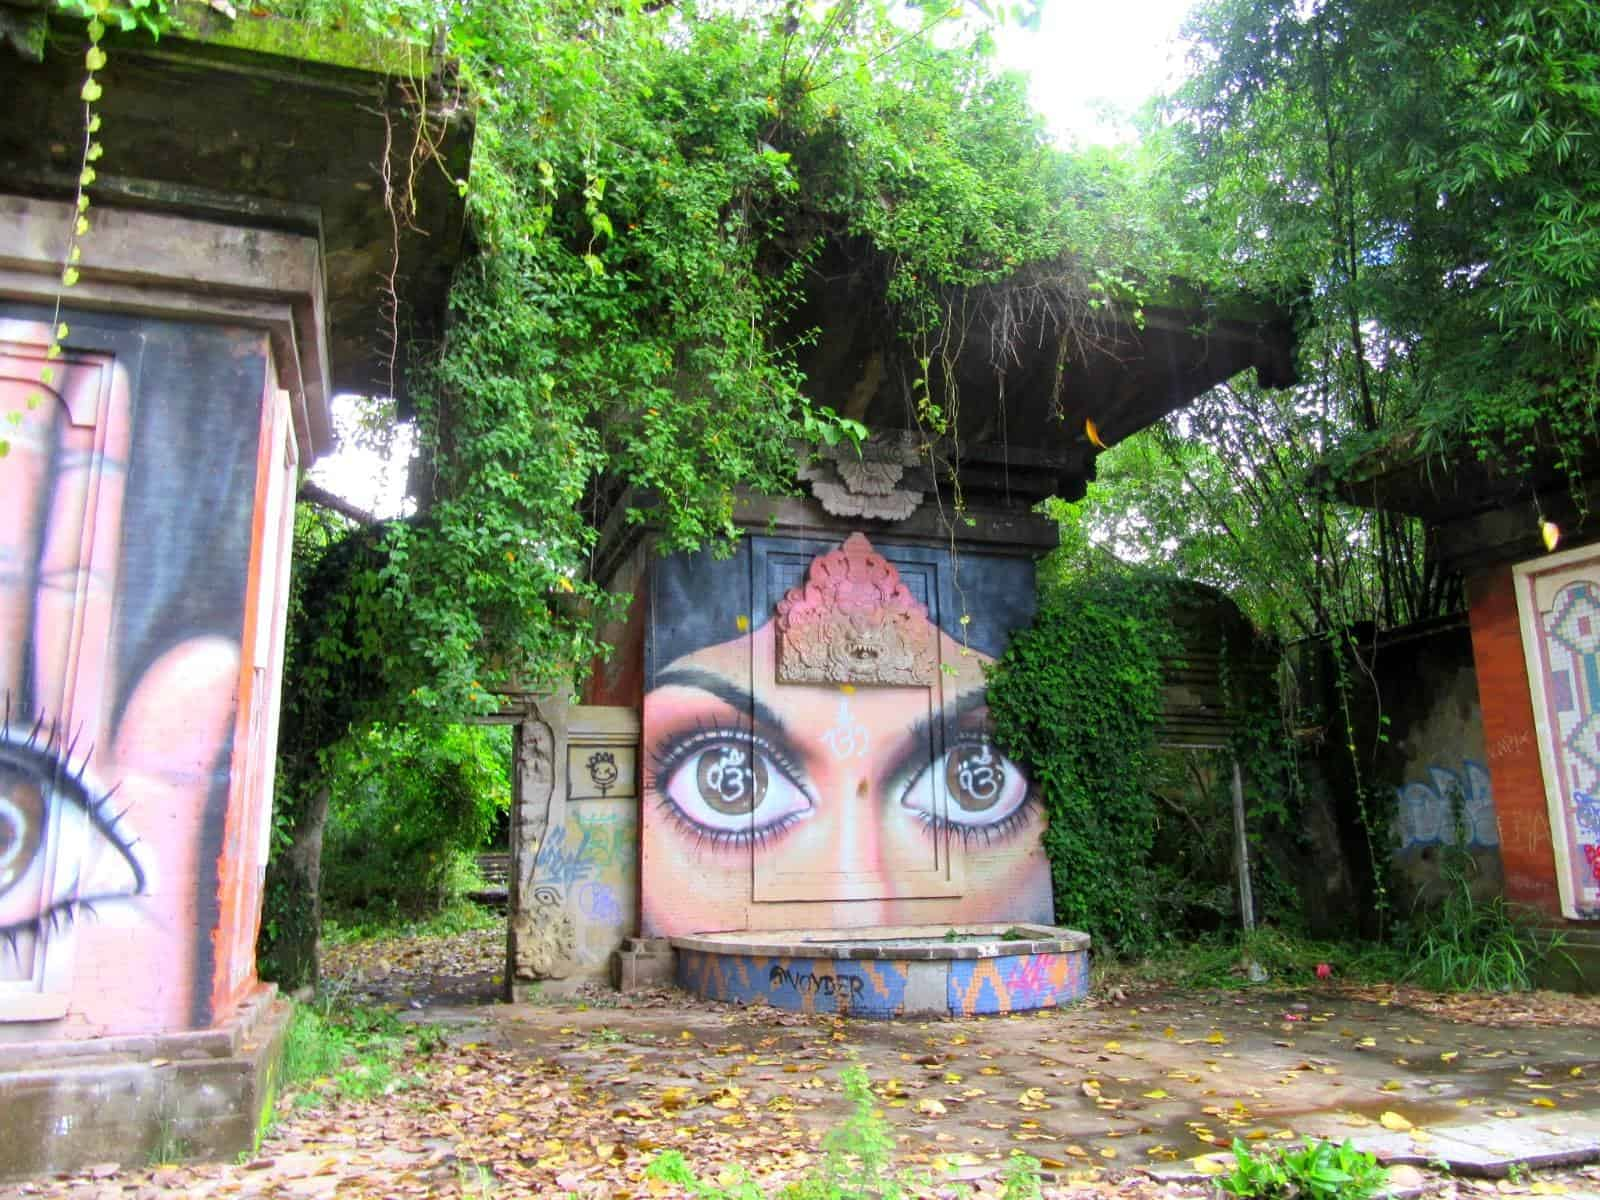 Graffiti Of A Woman's Eyes on a Concrete Construction at the Deserted Amusement Park, Taman Festival, Bali